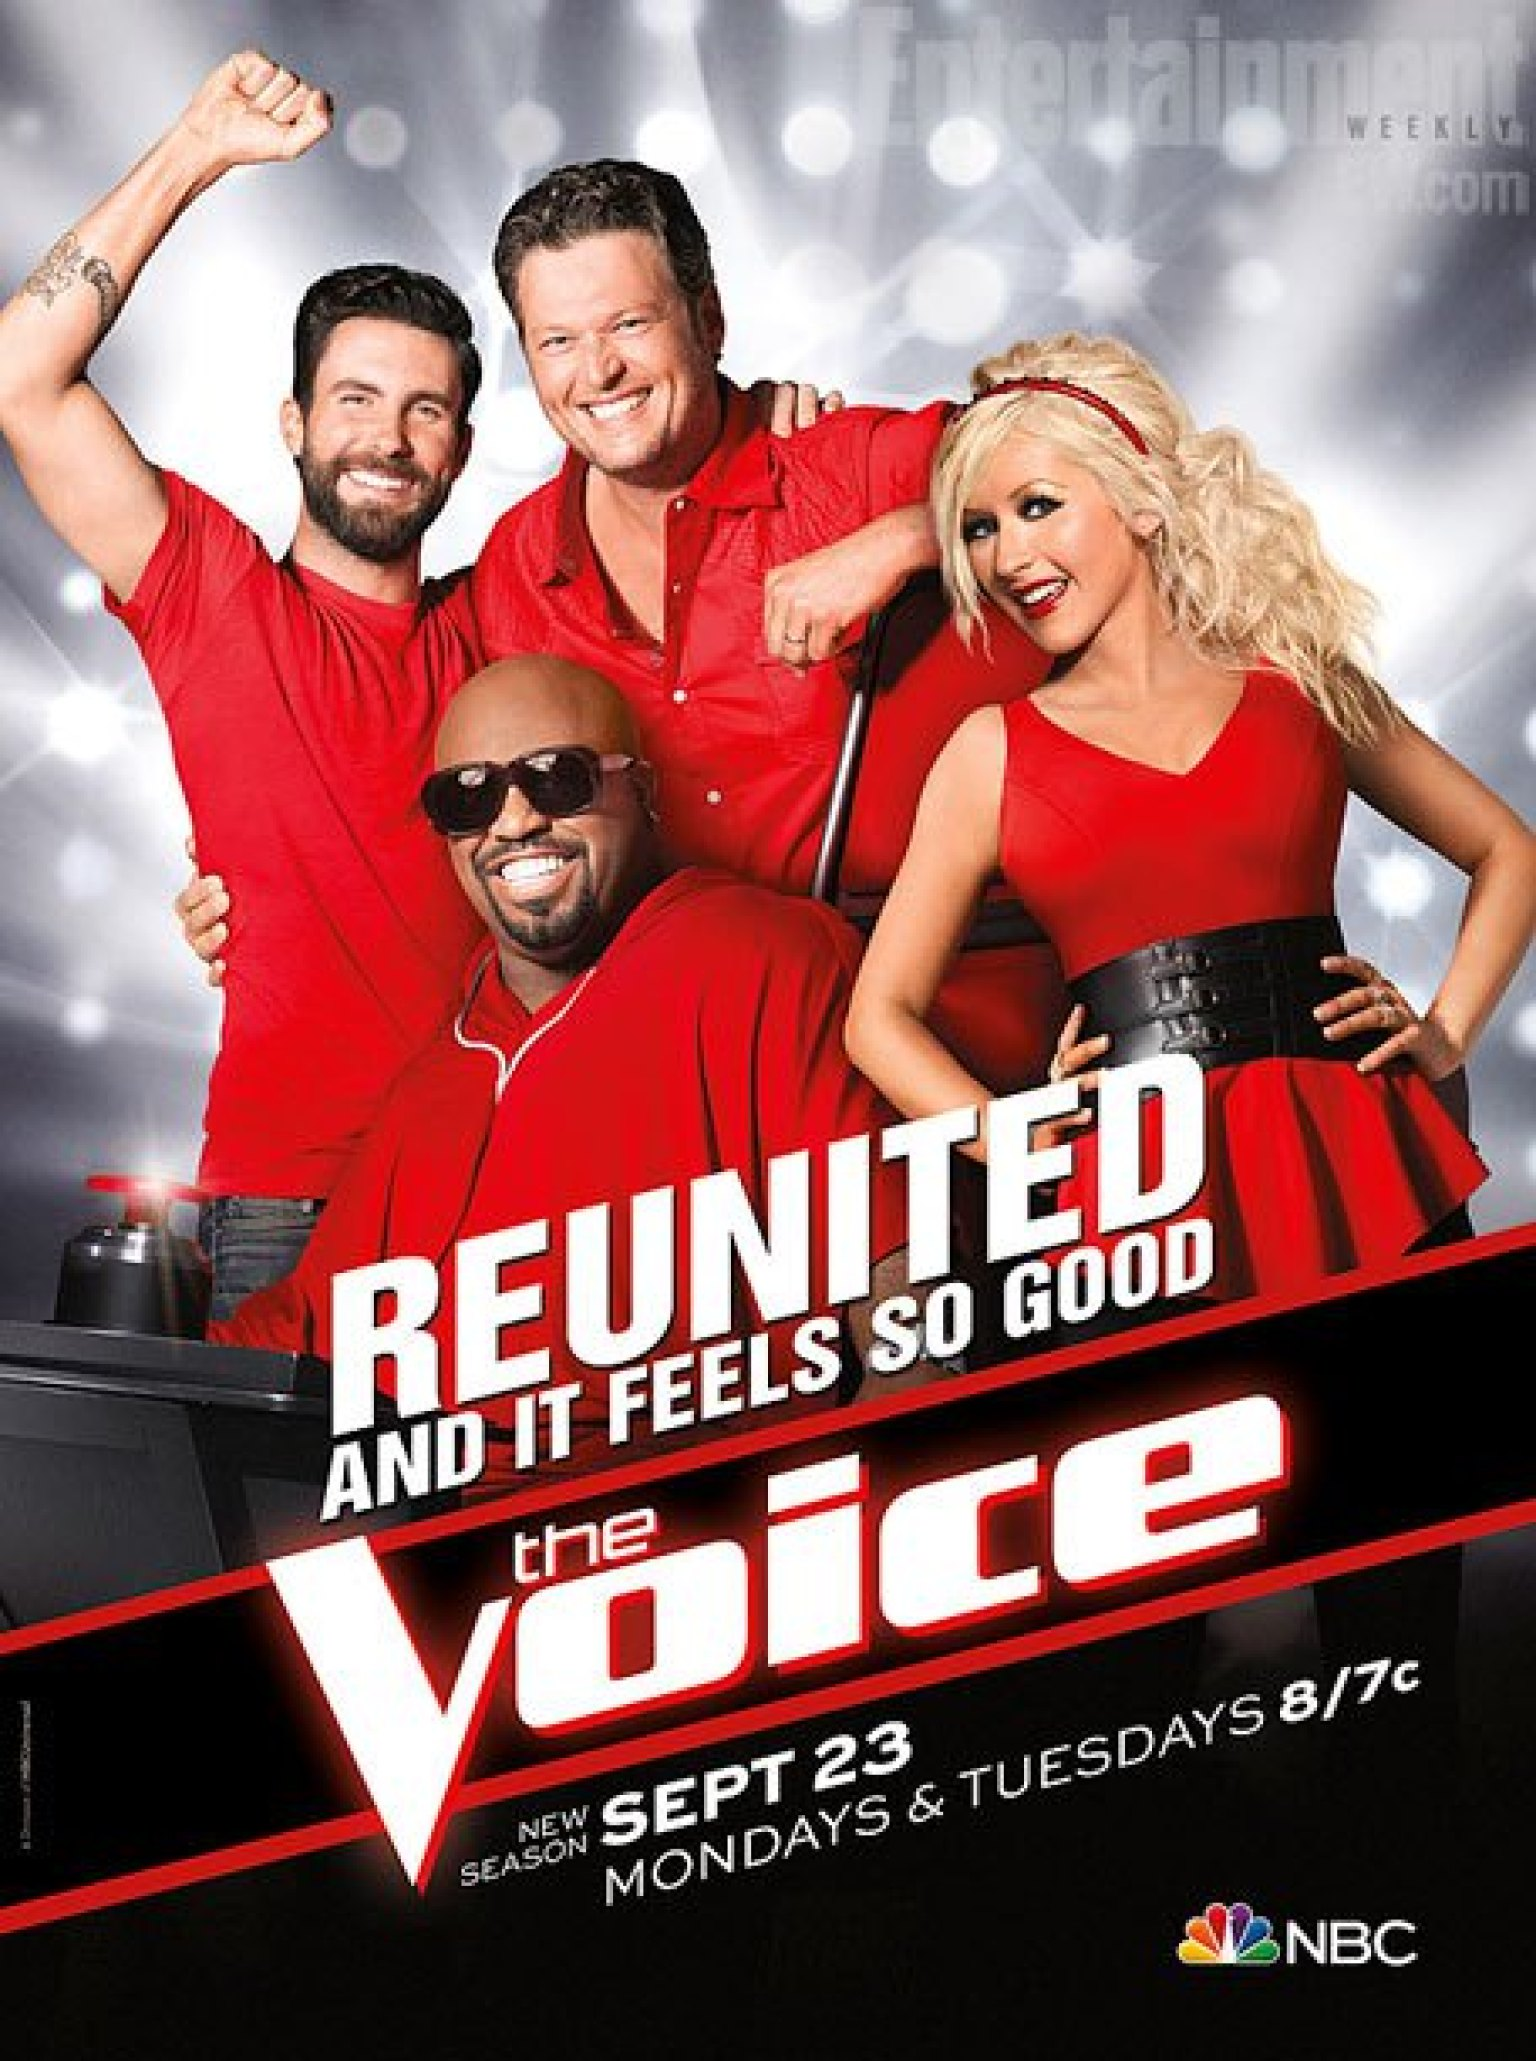 [MULTI] The Voice S06E16 720p HDTV x264-2HD - M-Hddl